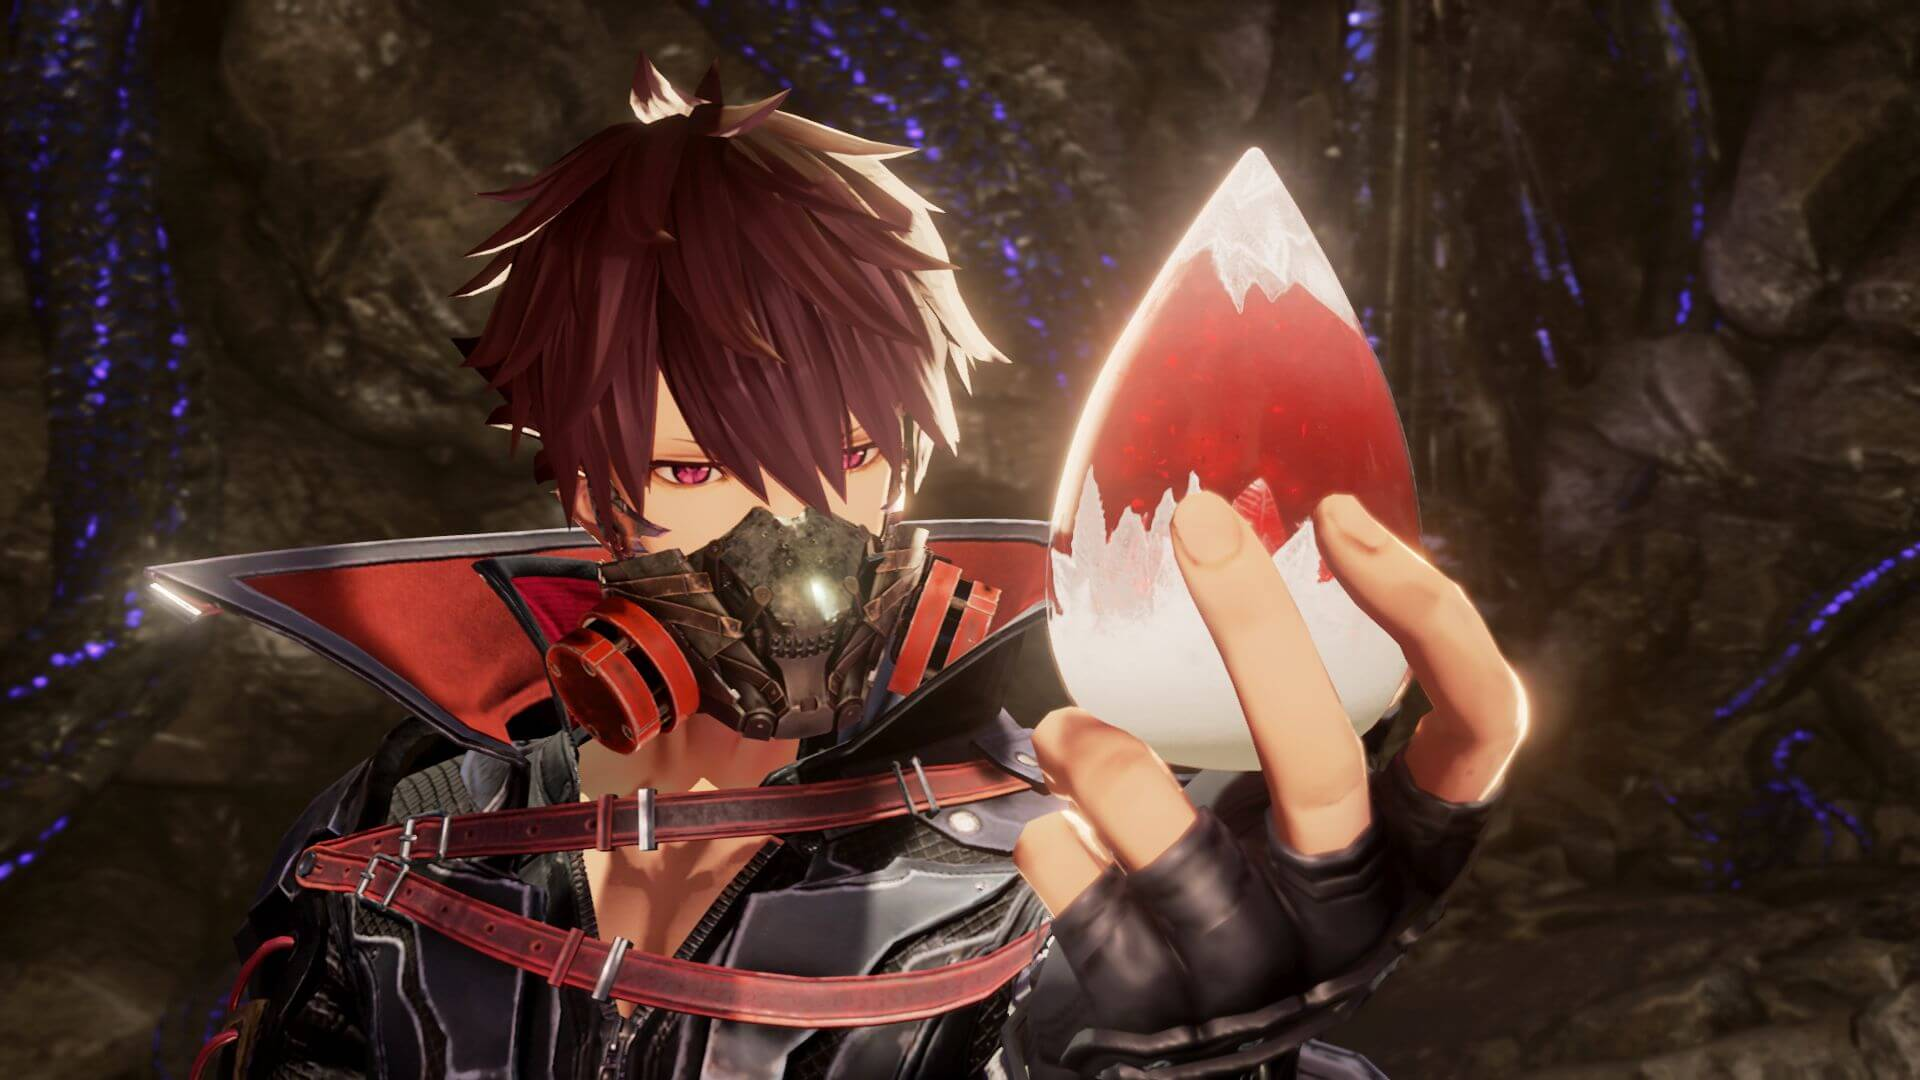 Bandai Namcos Vampire RPG Code Vein Gets a Bloody New Trailer and